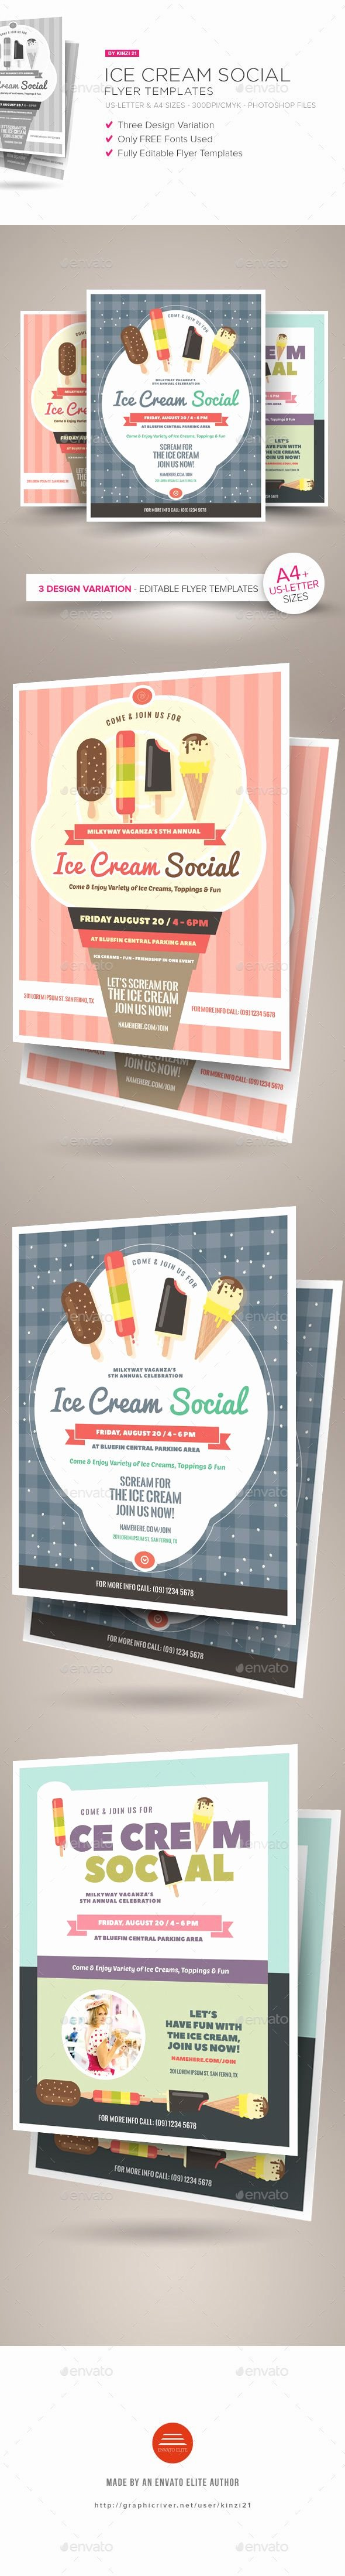 Ice Cream social Flyer Template Awesome Ice Cream social Flyer Templates